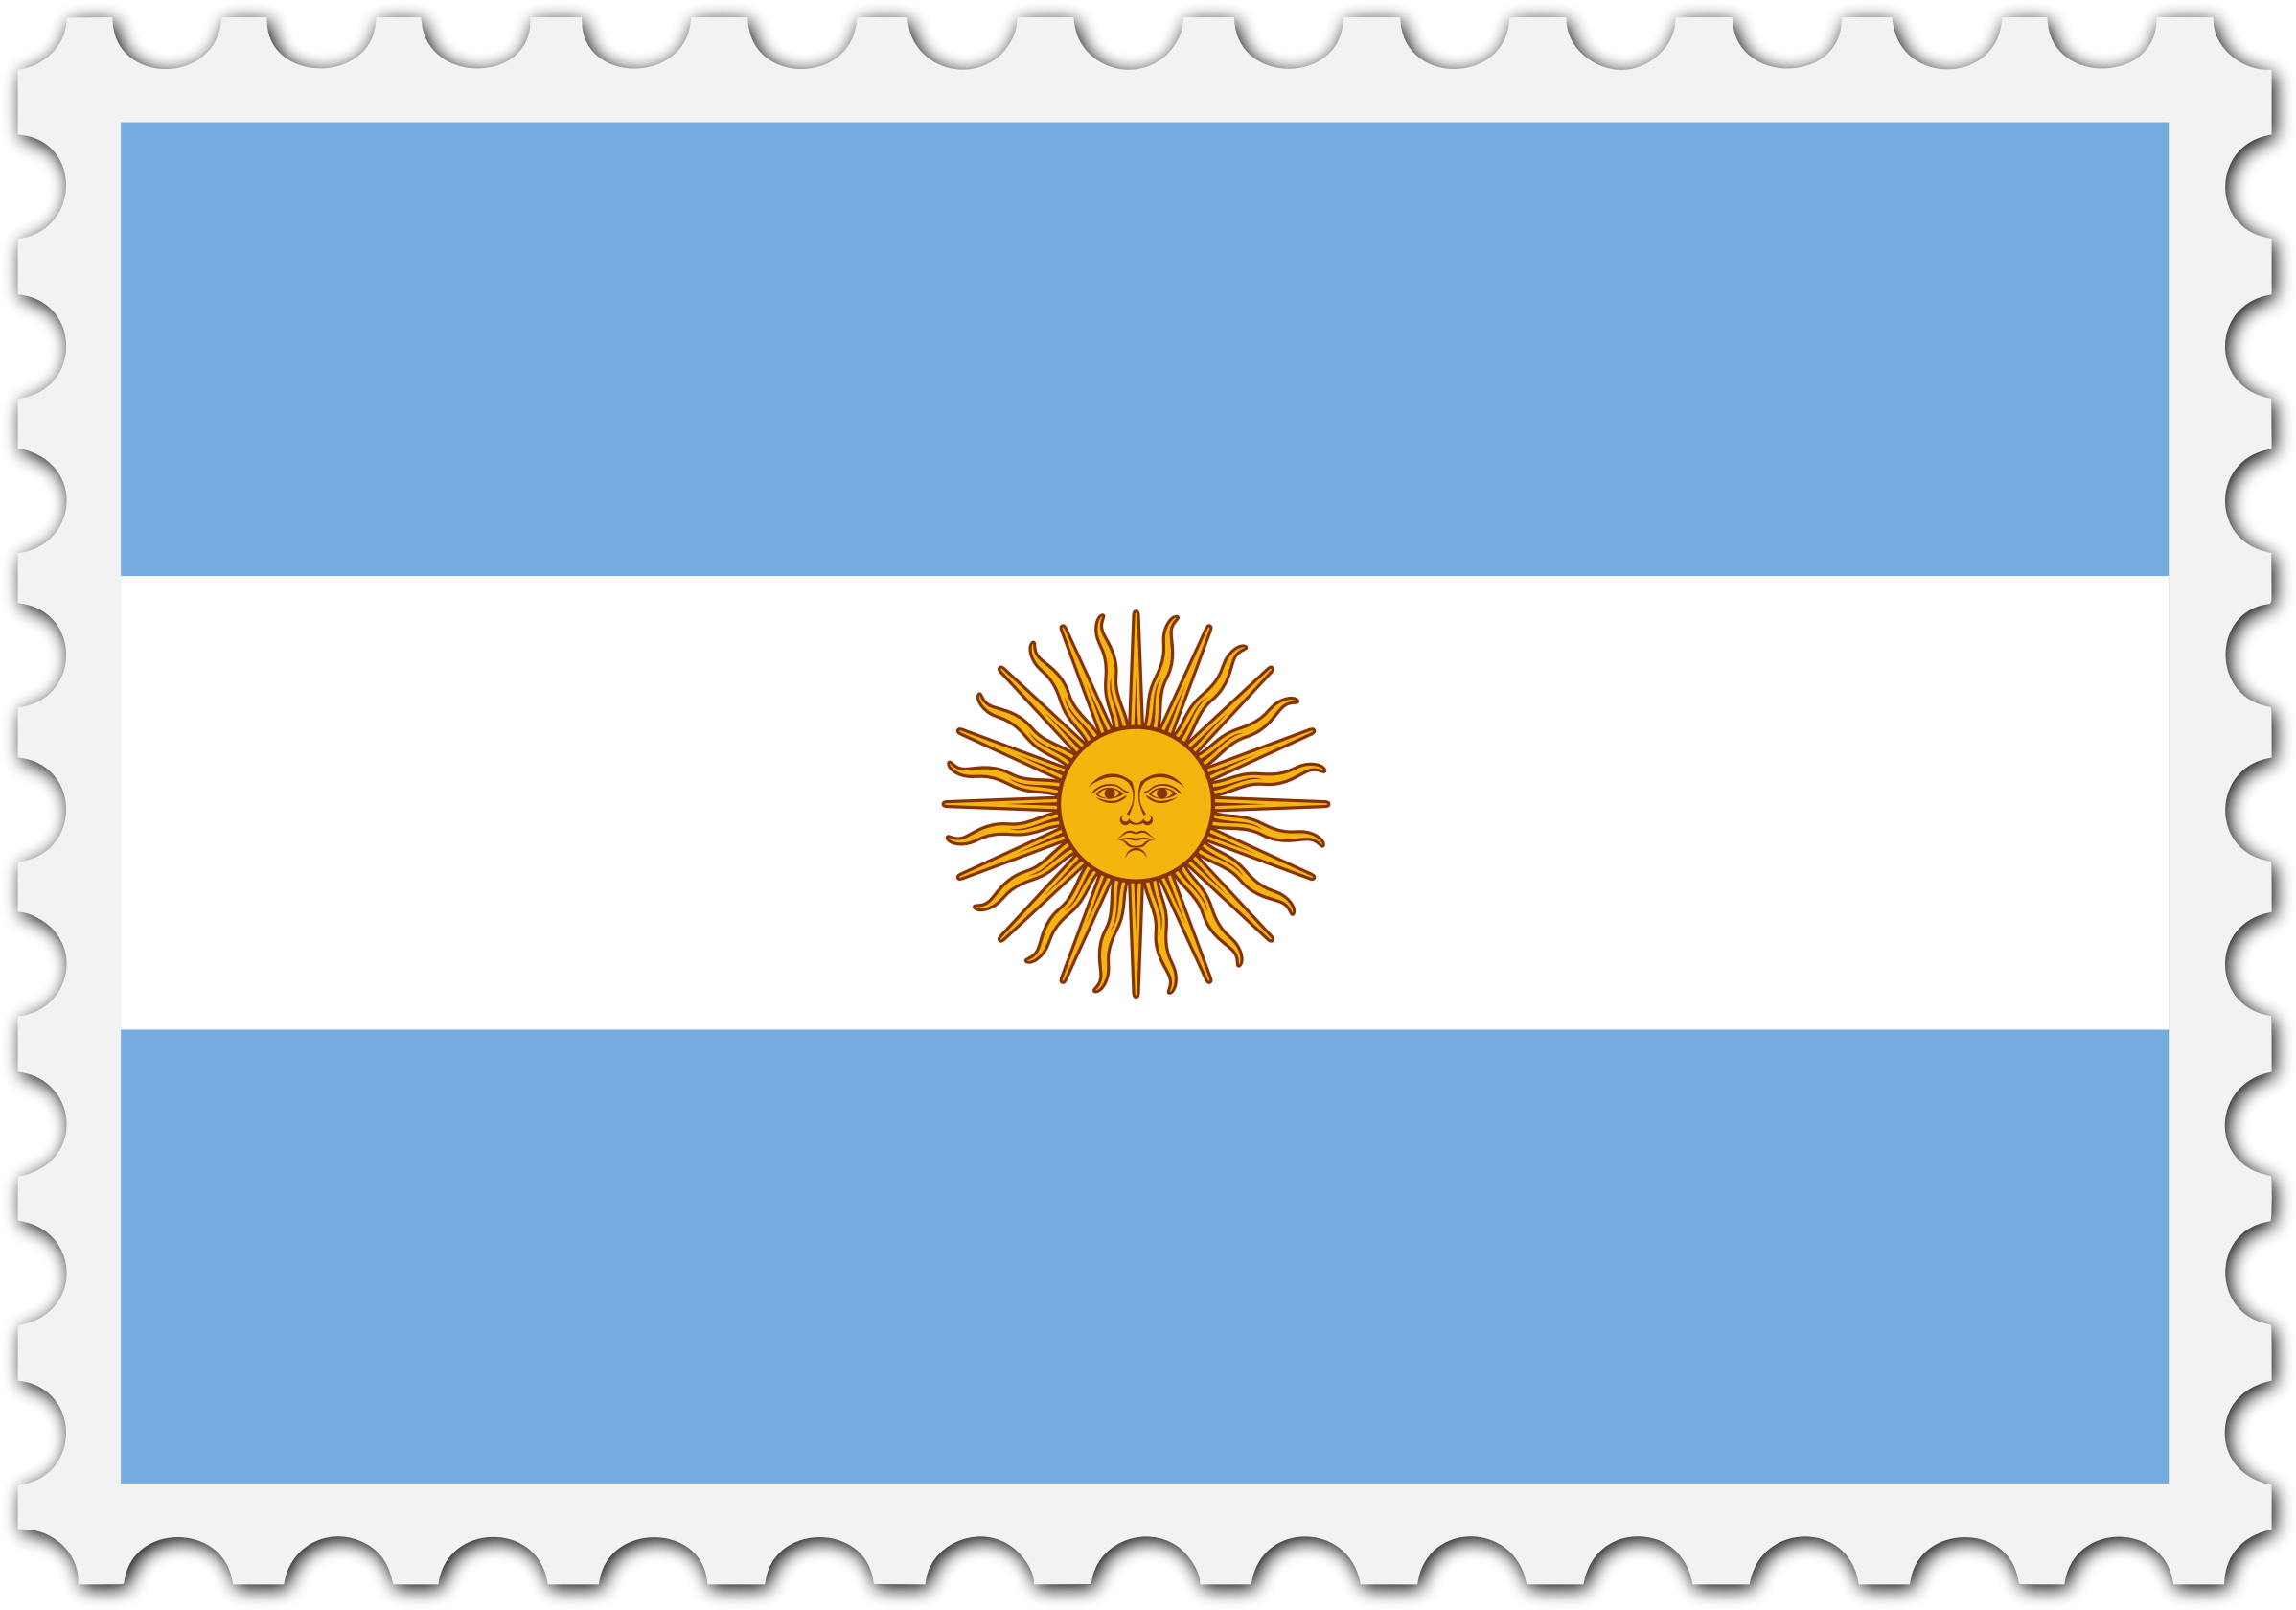 Argentina flag stamp by Firkin